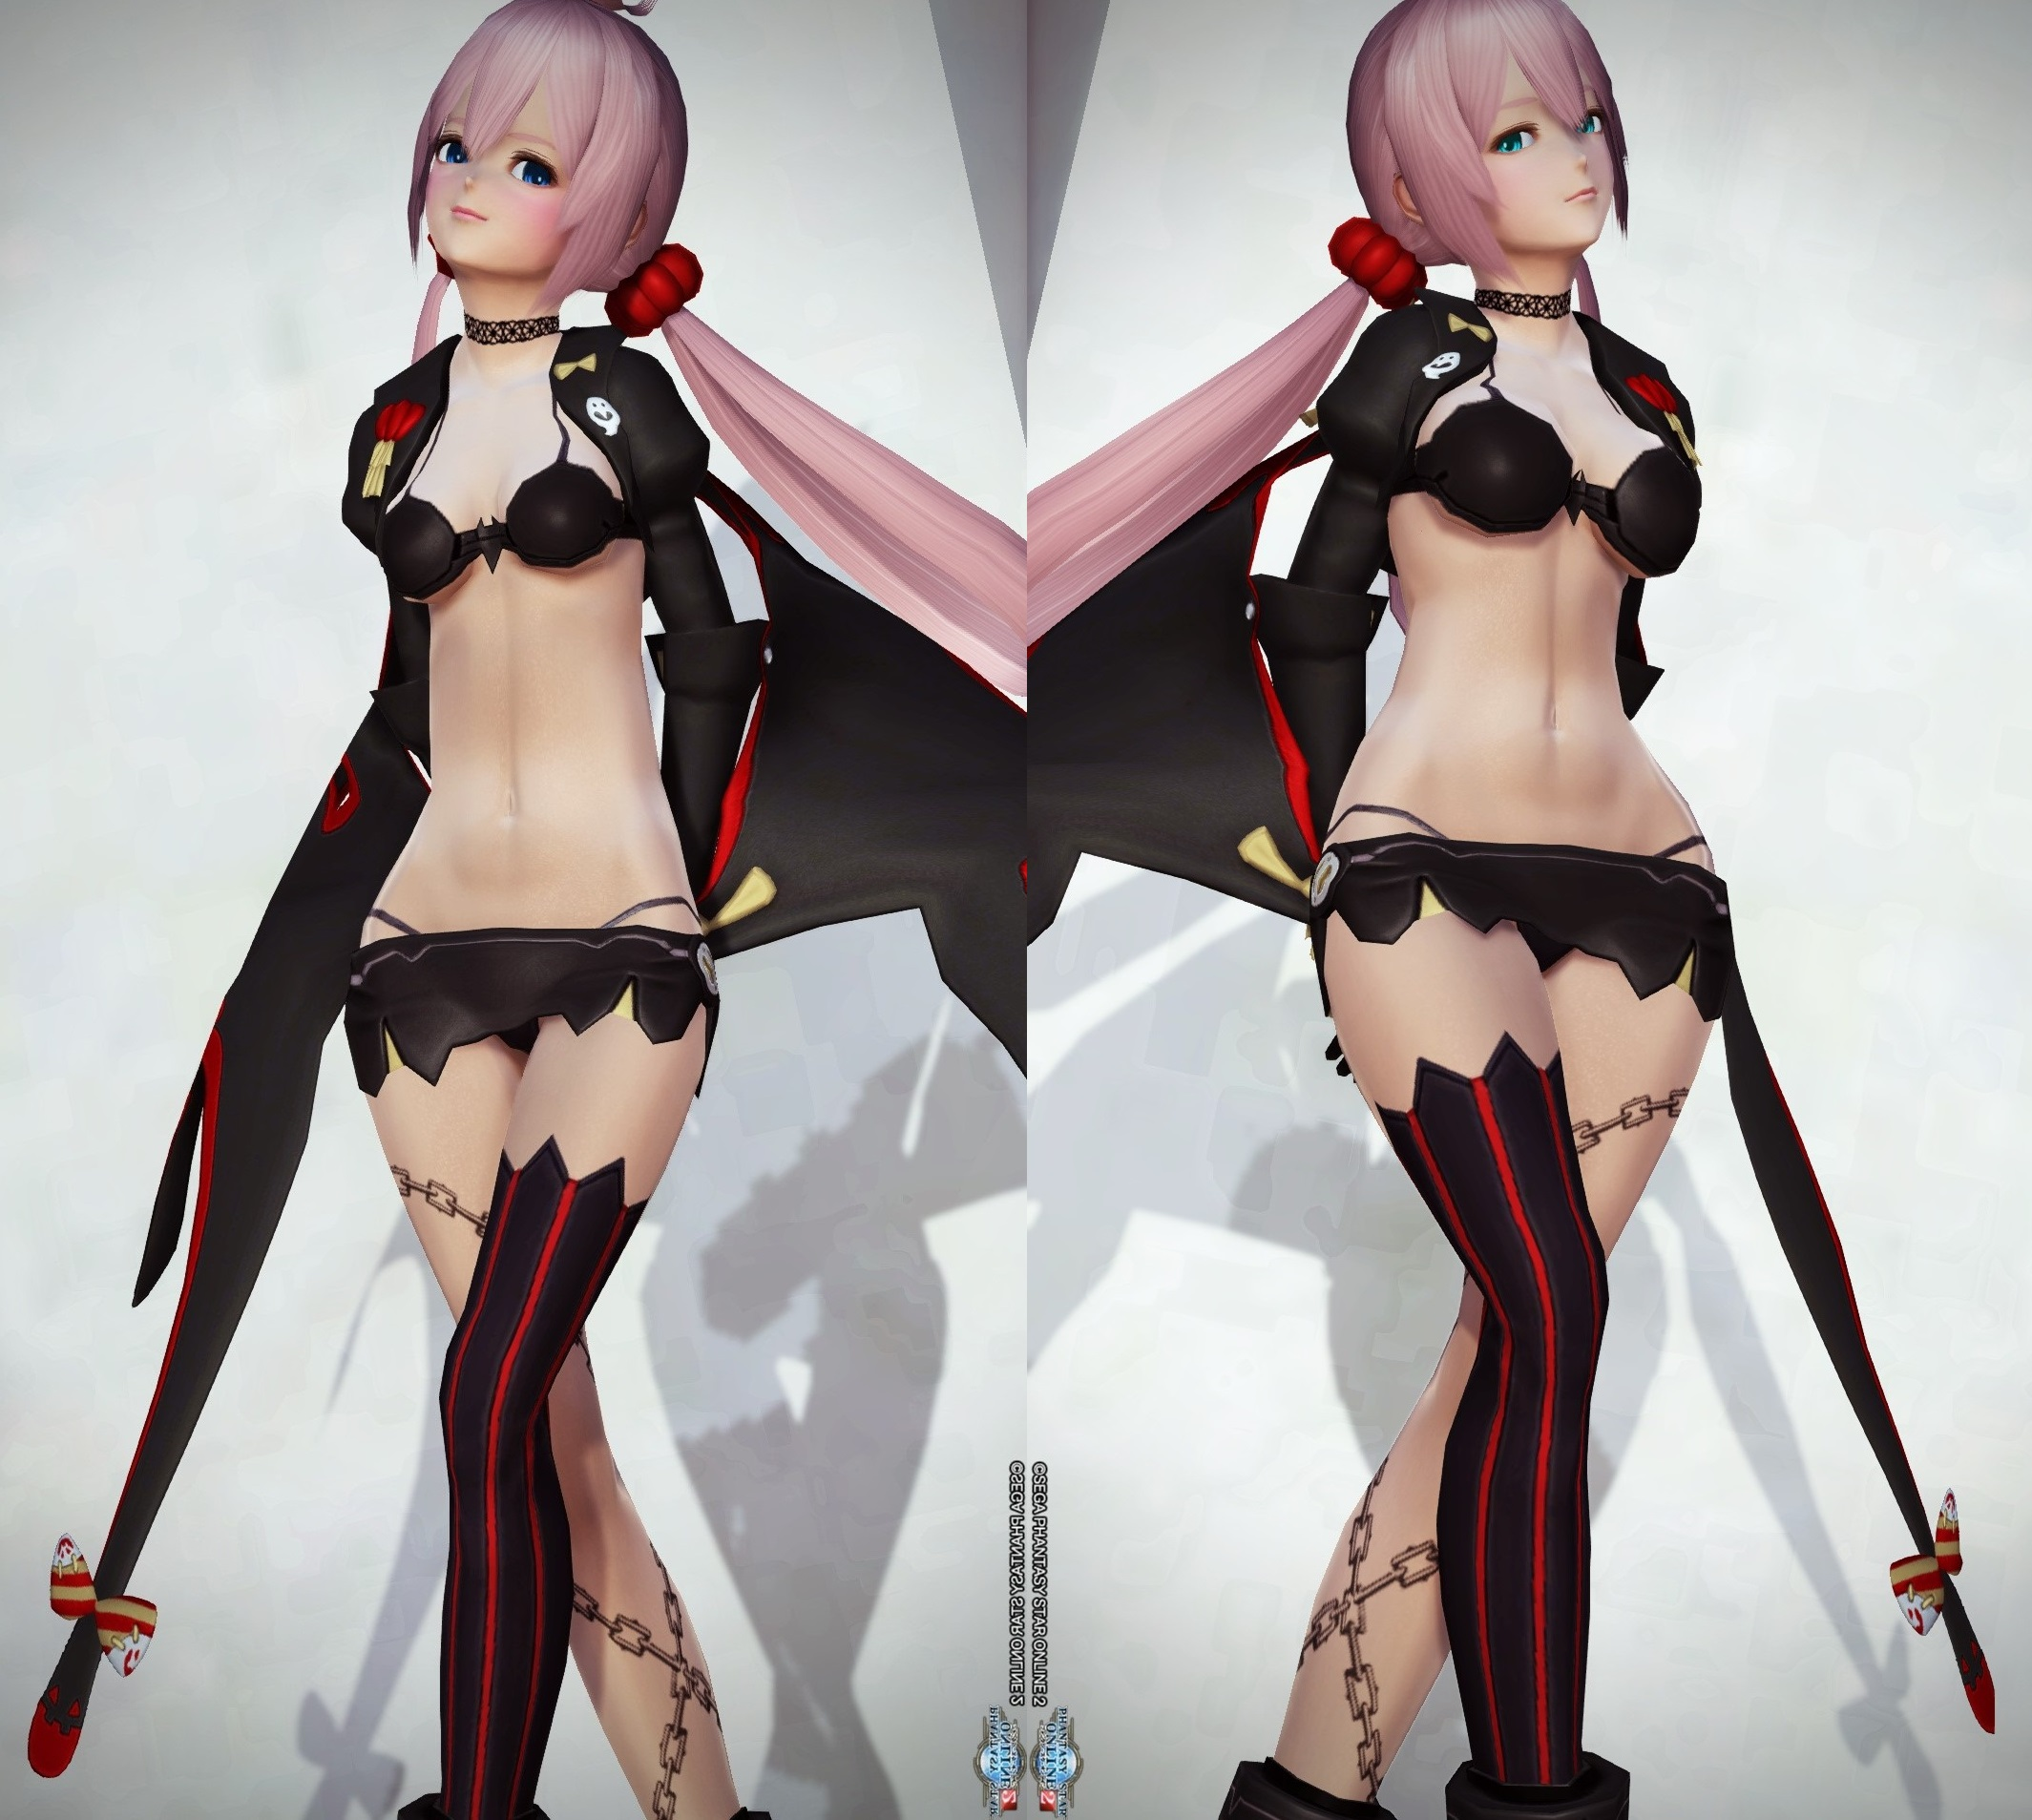 【PSO2】スッキリ顔スレ13 [無断転載禁止]©2ch.net